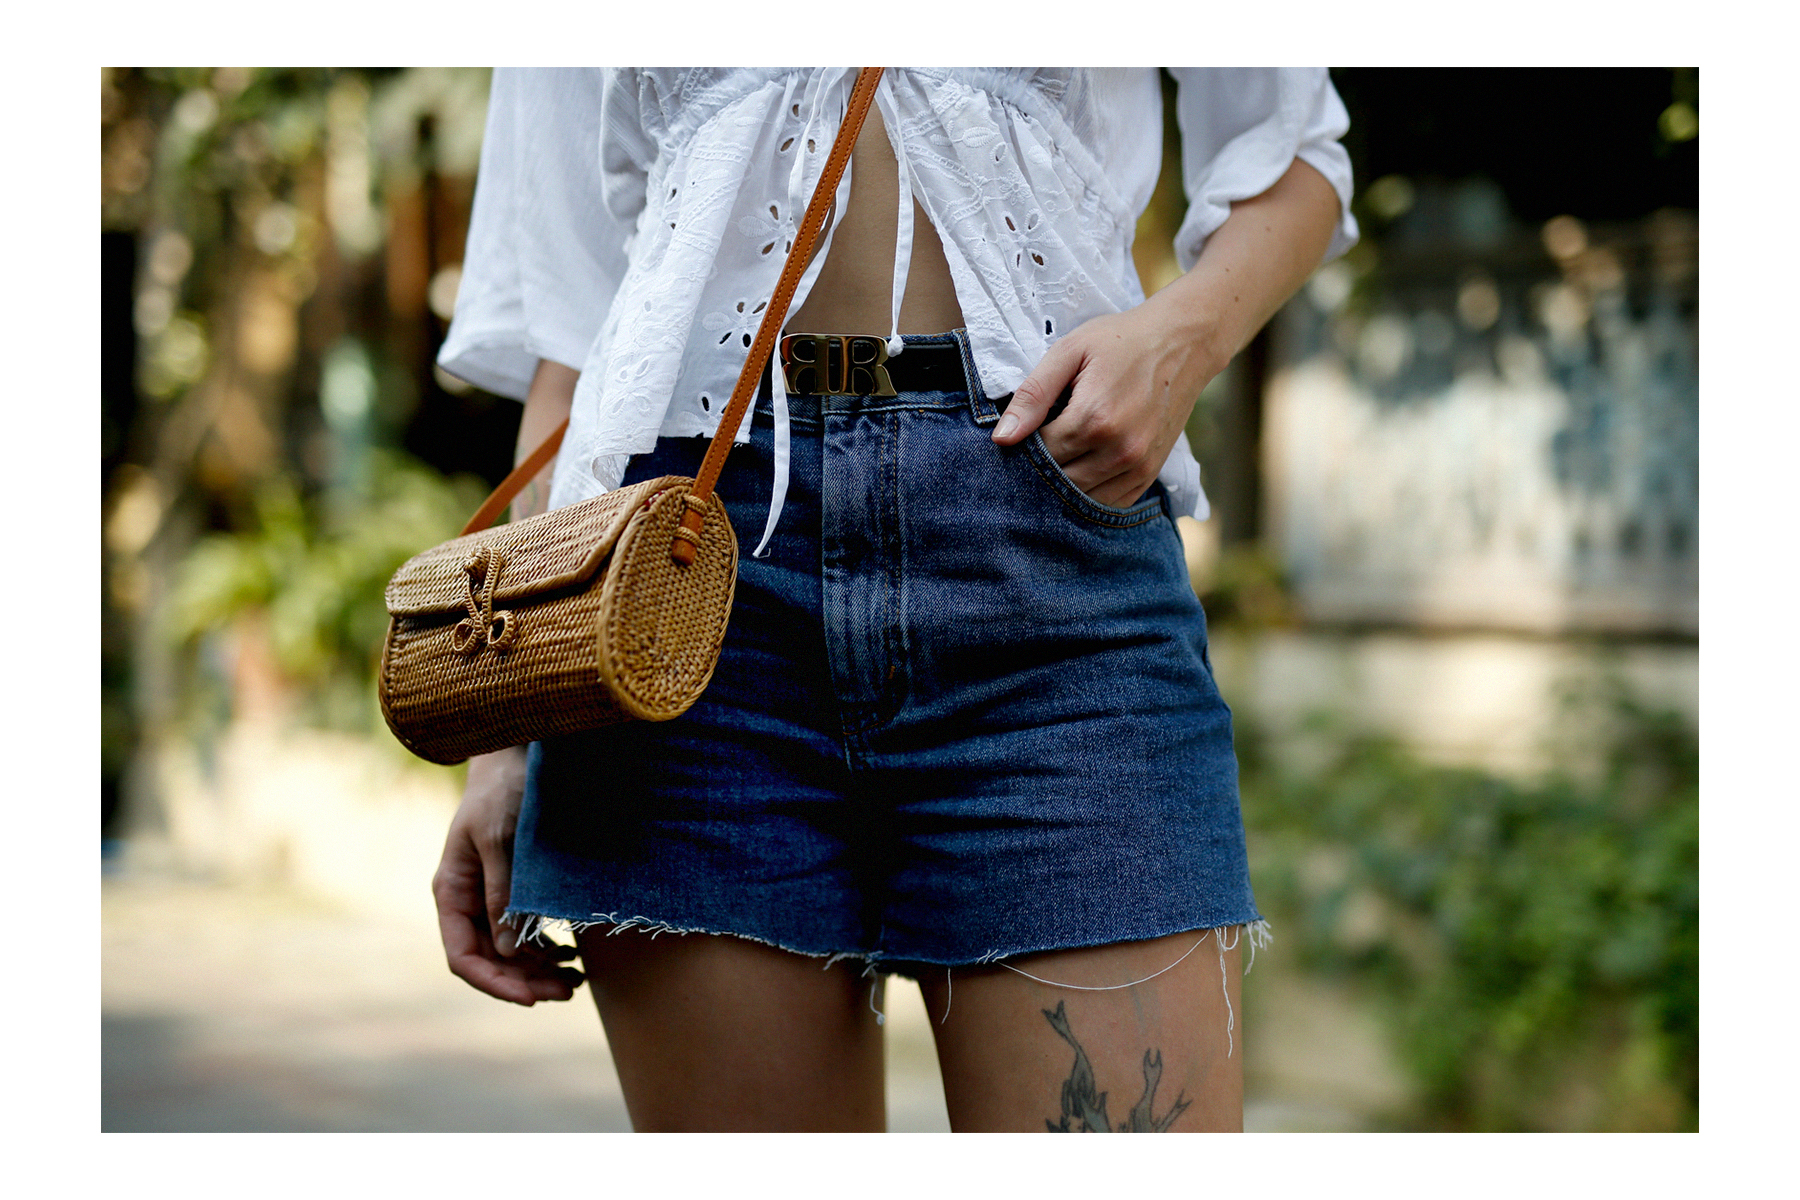 outfit bali denim shorts & other stories pull and bear blouse gucci sunglasses sacha shoes ubud styling style art market modeblogger travelblogger outfitblog ricarda schernus max bechmann 3